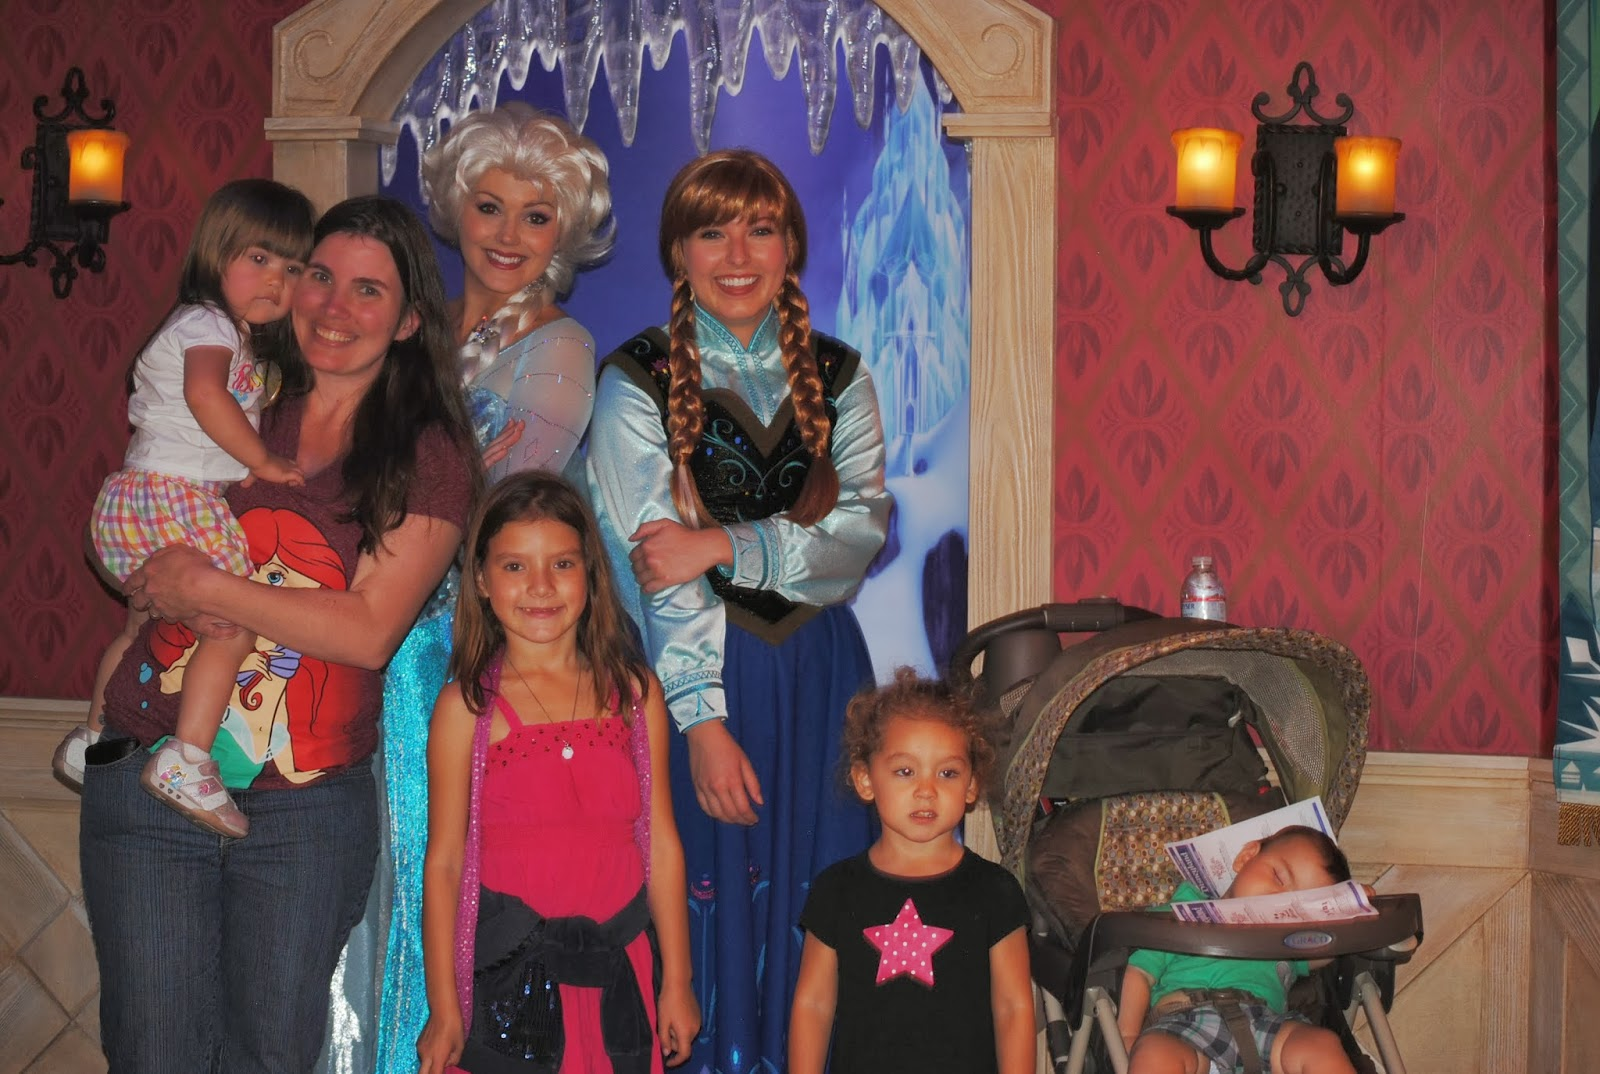 Meet frozens anna and elsa now at disneyland and disney world meet frozens anna and elsa now at disneyland and disney world 14 m4hsunfo